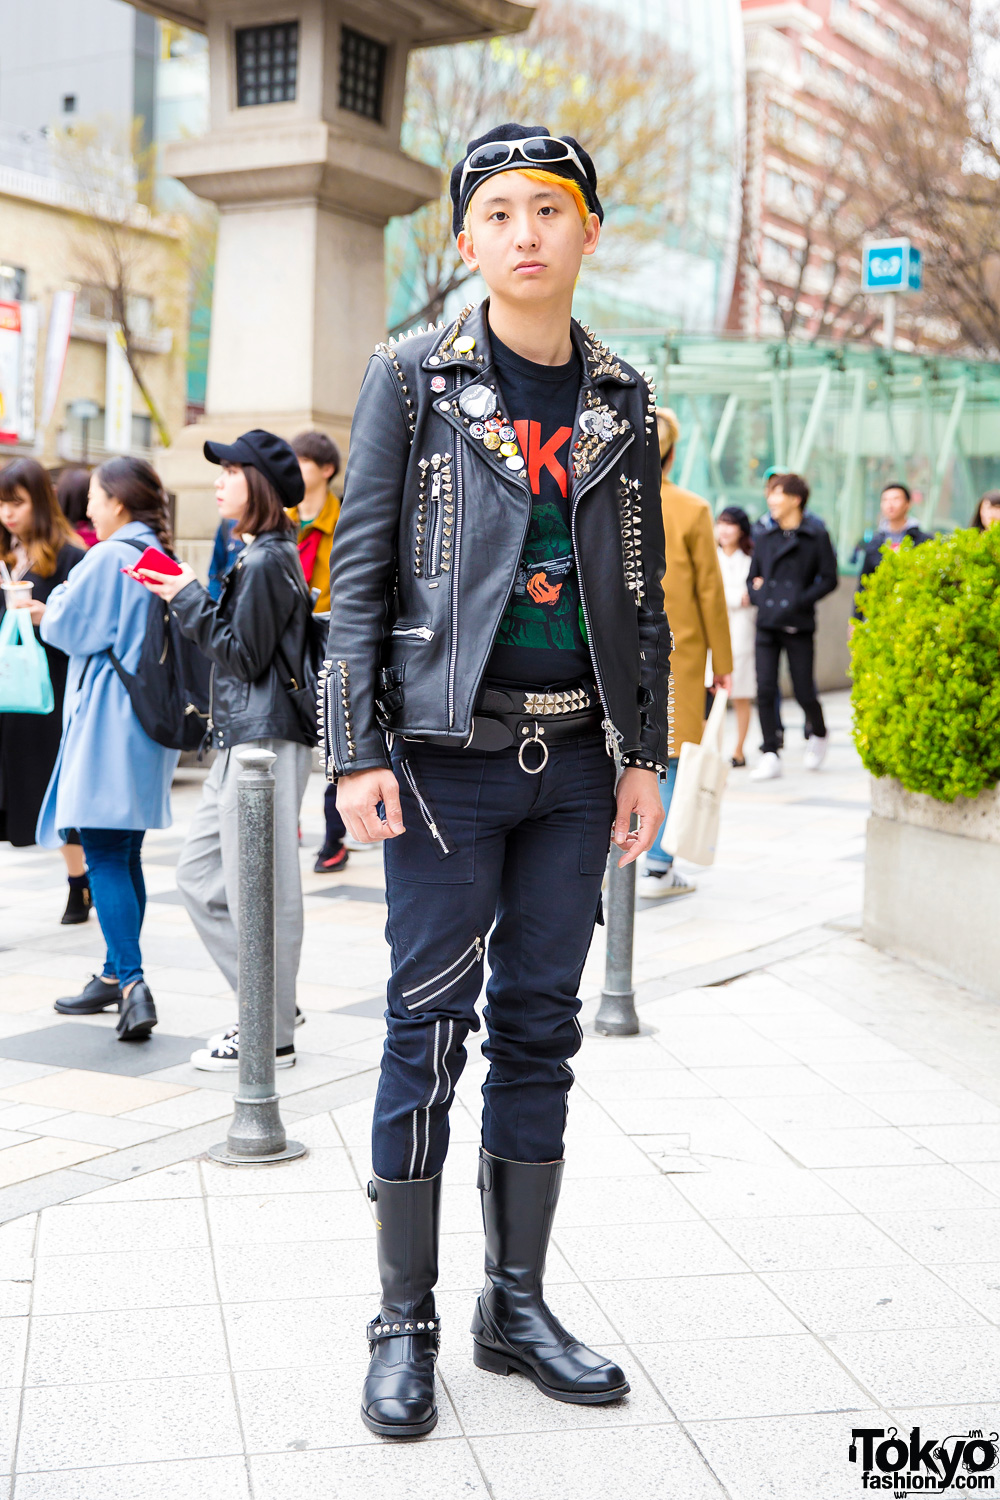 Punk Inspired Harajuku Street Style W Spiked Leather